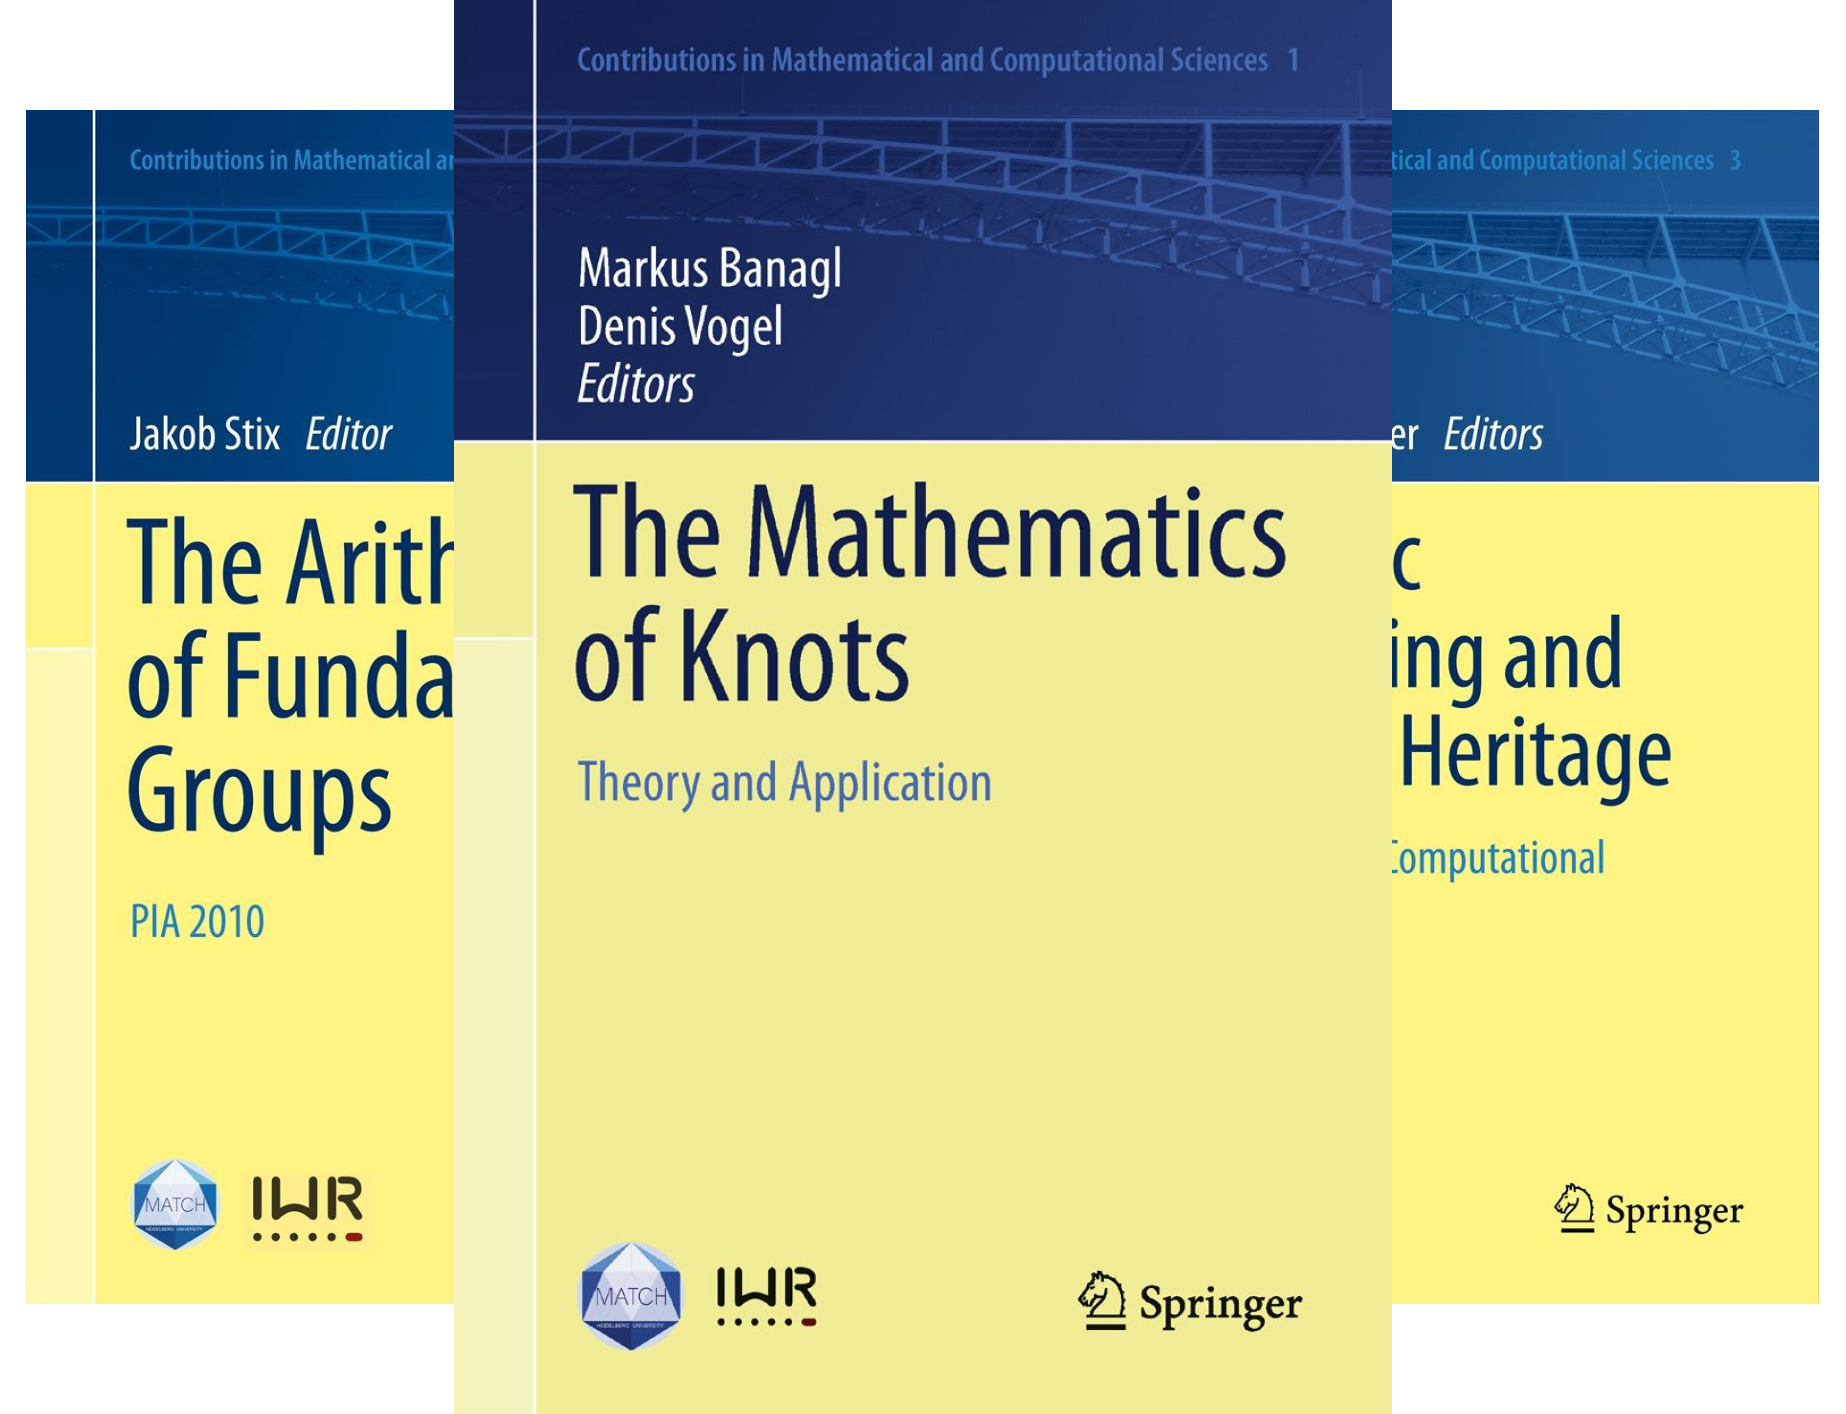 Contributions in Mathematical and Computational